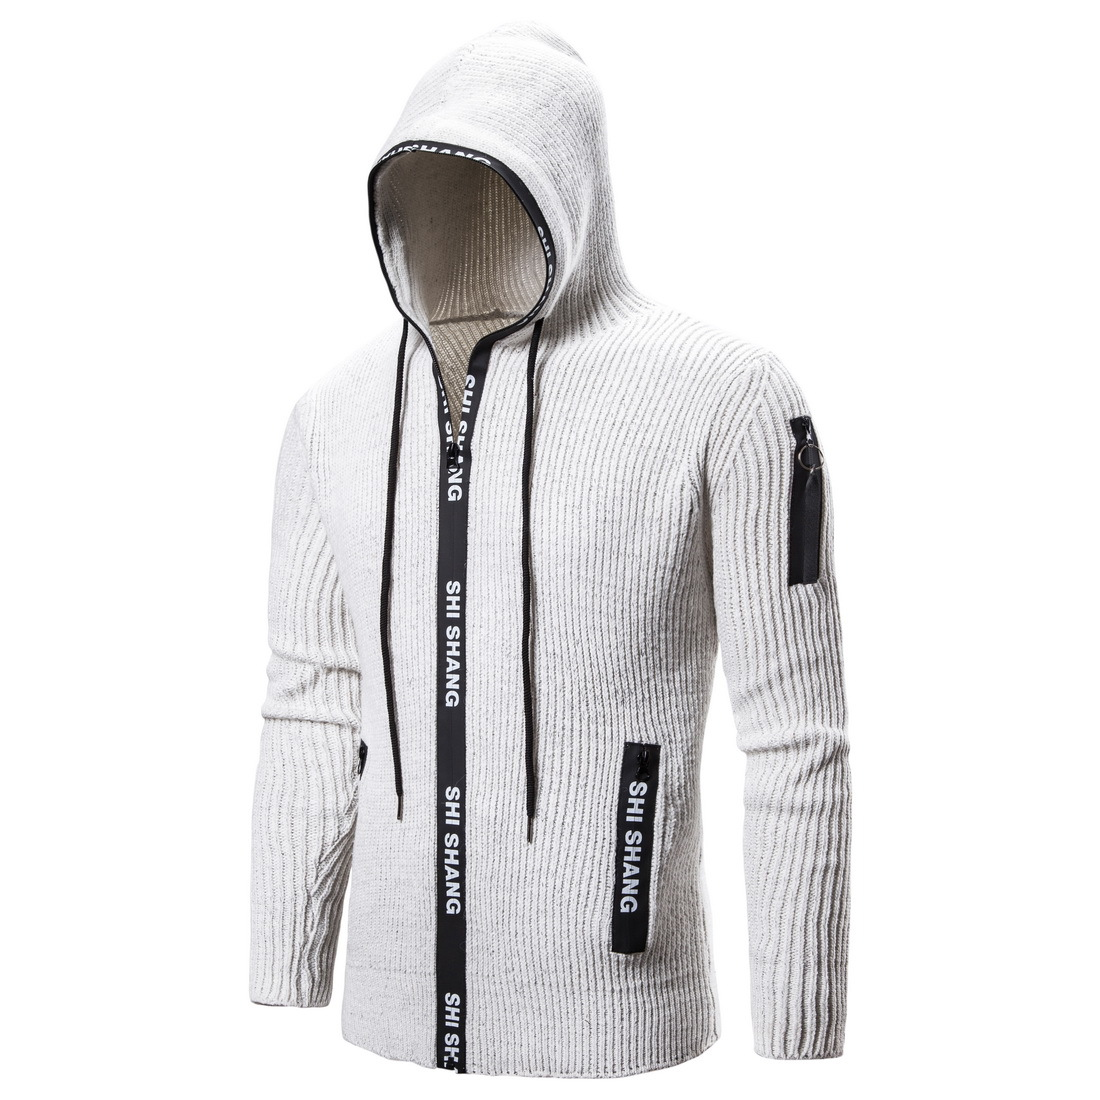 NEGIZBER 2019 Off White Sweater Men Cardigan Solid Slim Fit Zipper Hoody Sweaters Men Fashion Thick Cardigan Men Sweater Coats